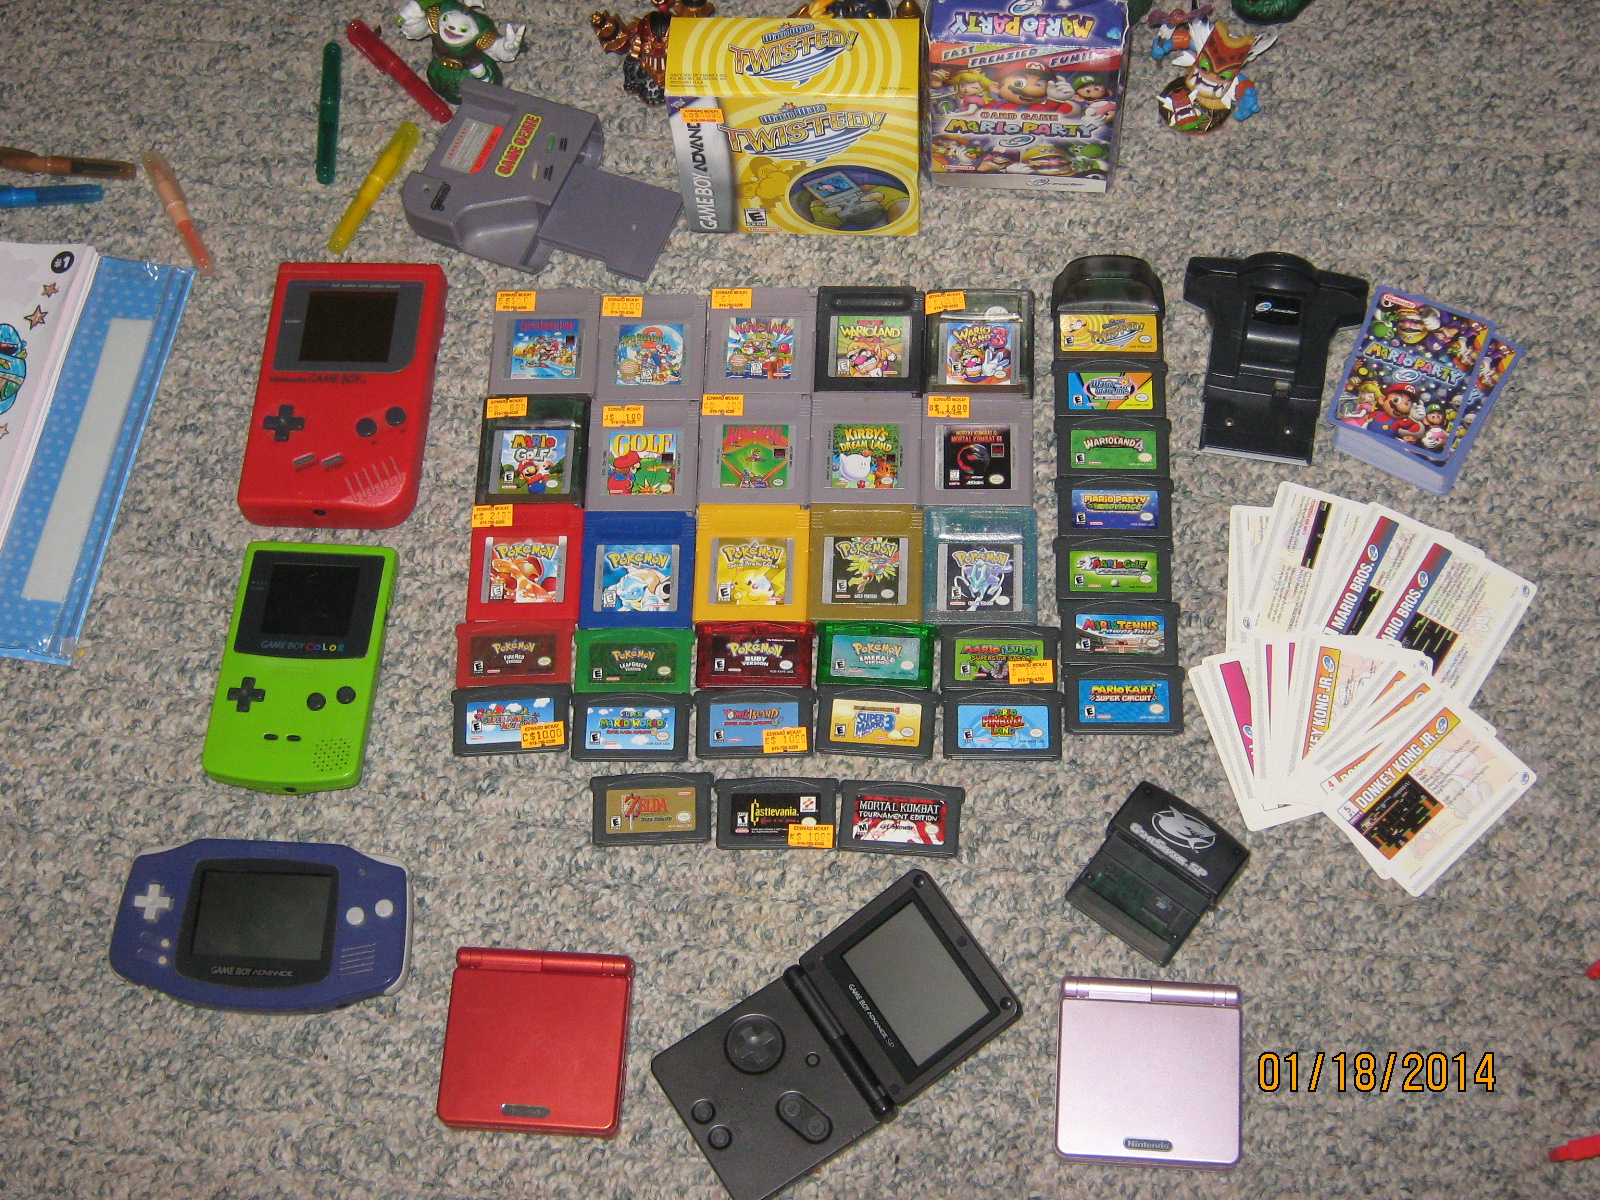 Game Boy, Game Boy Color, and GBA Stuff.JPG